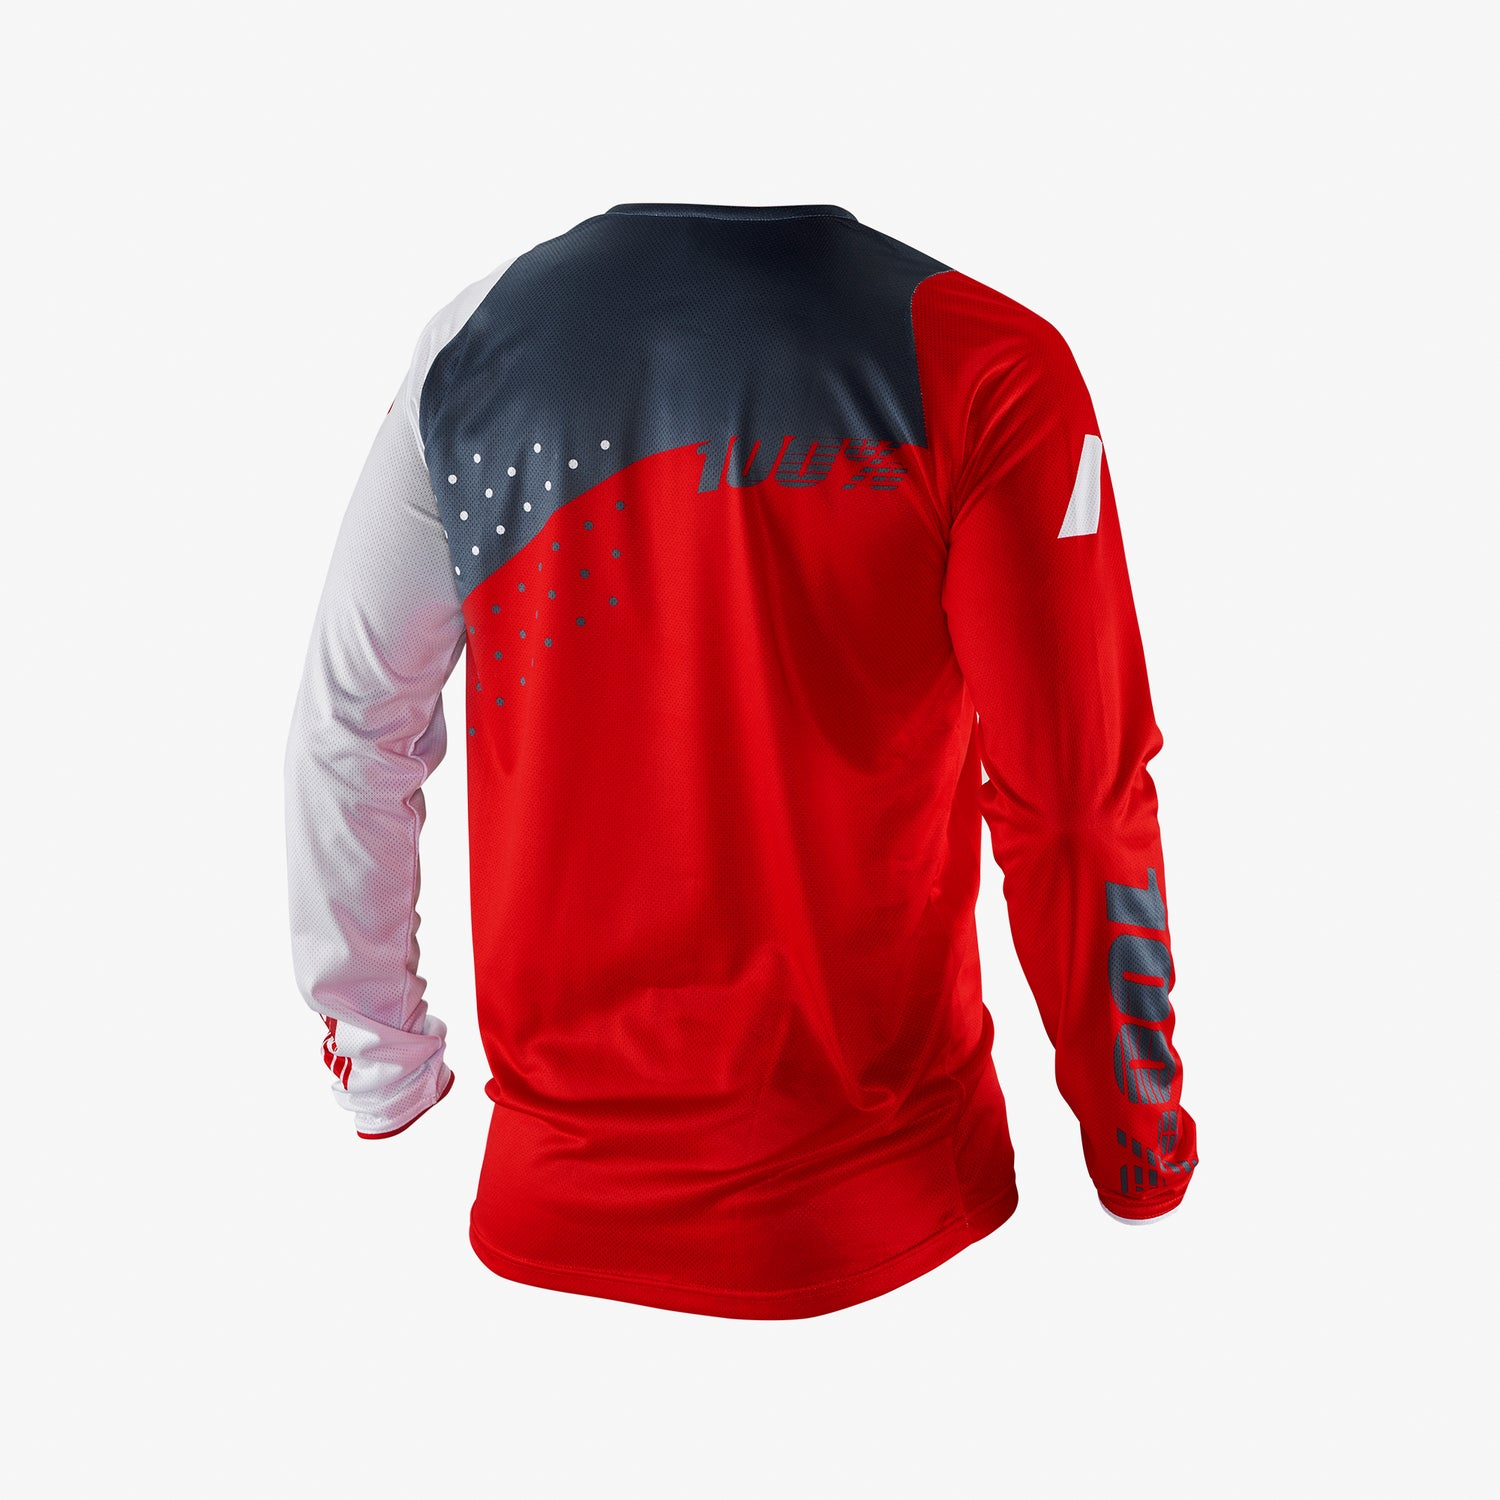 R-CORE DH LS Jersey - Red